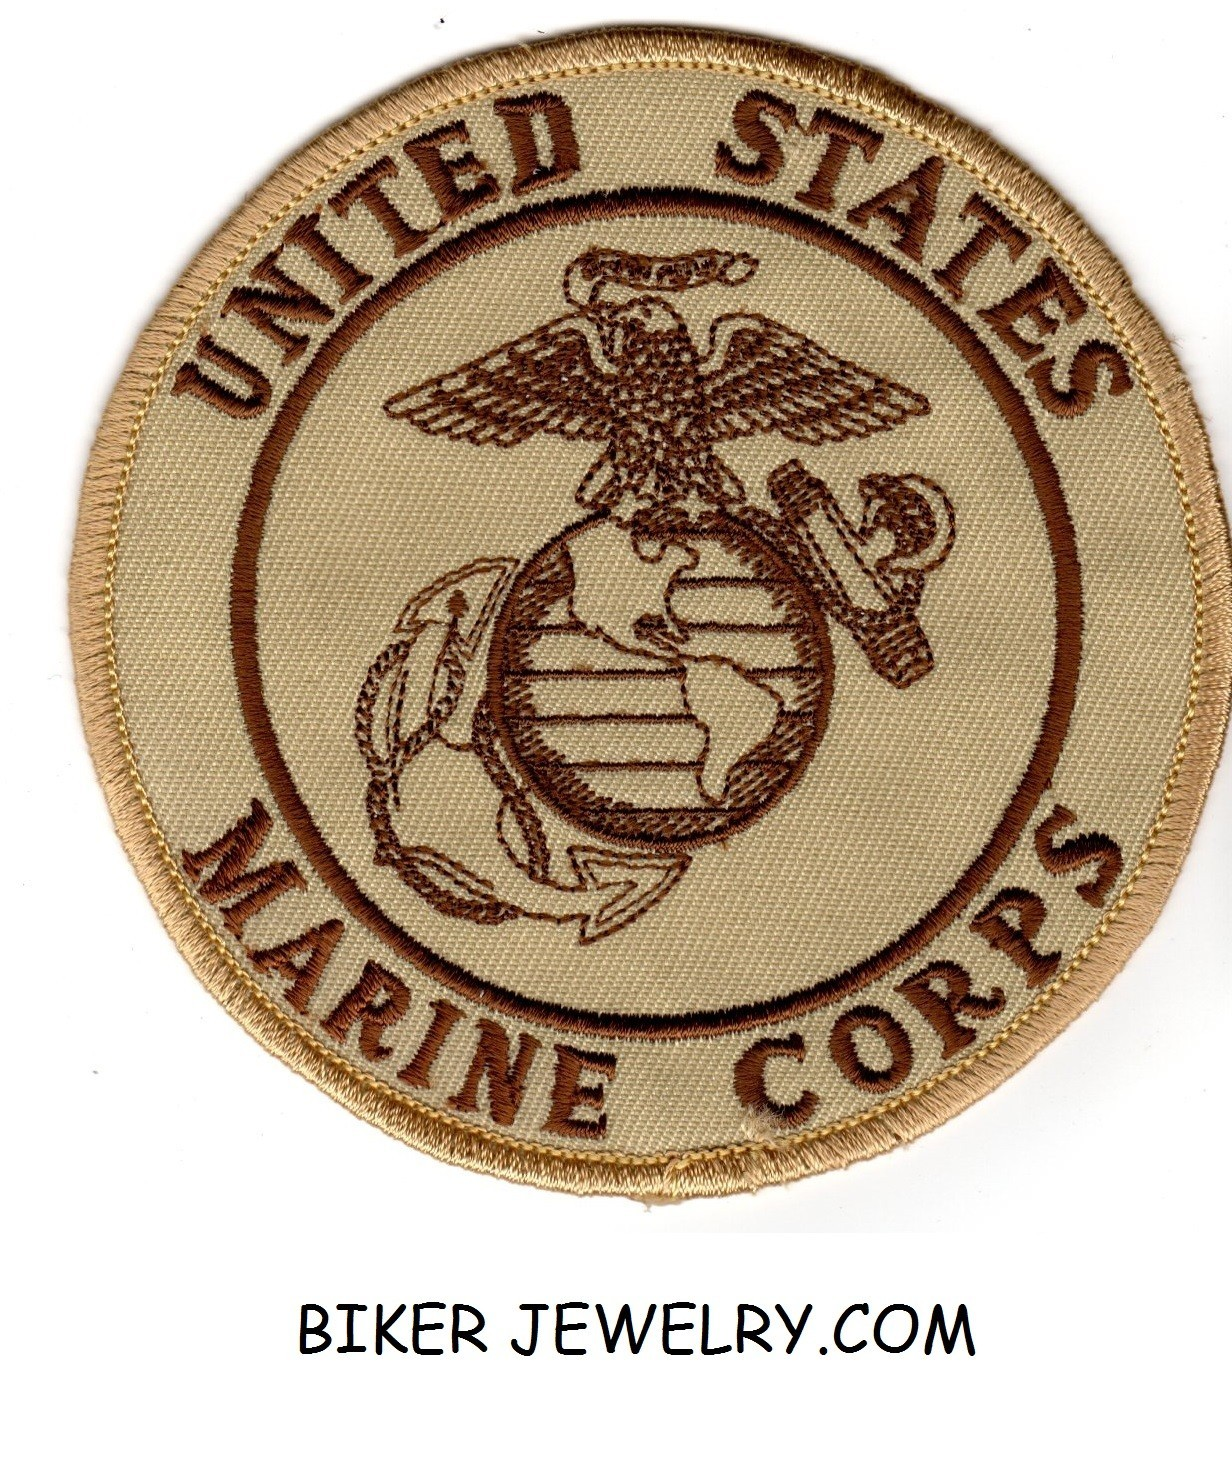 U.S. MARINE CORPS  Military Patch  TWO Sizes Round  FREE SHIPPING - Product Image